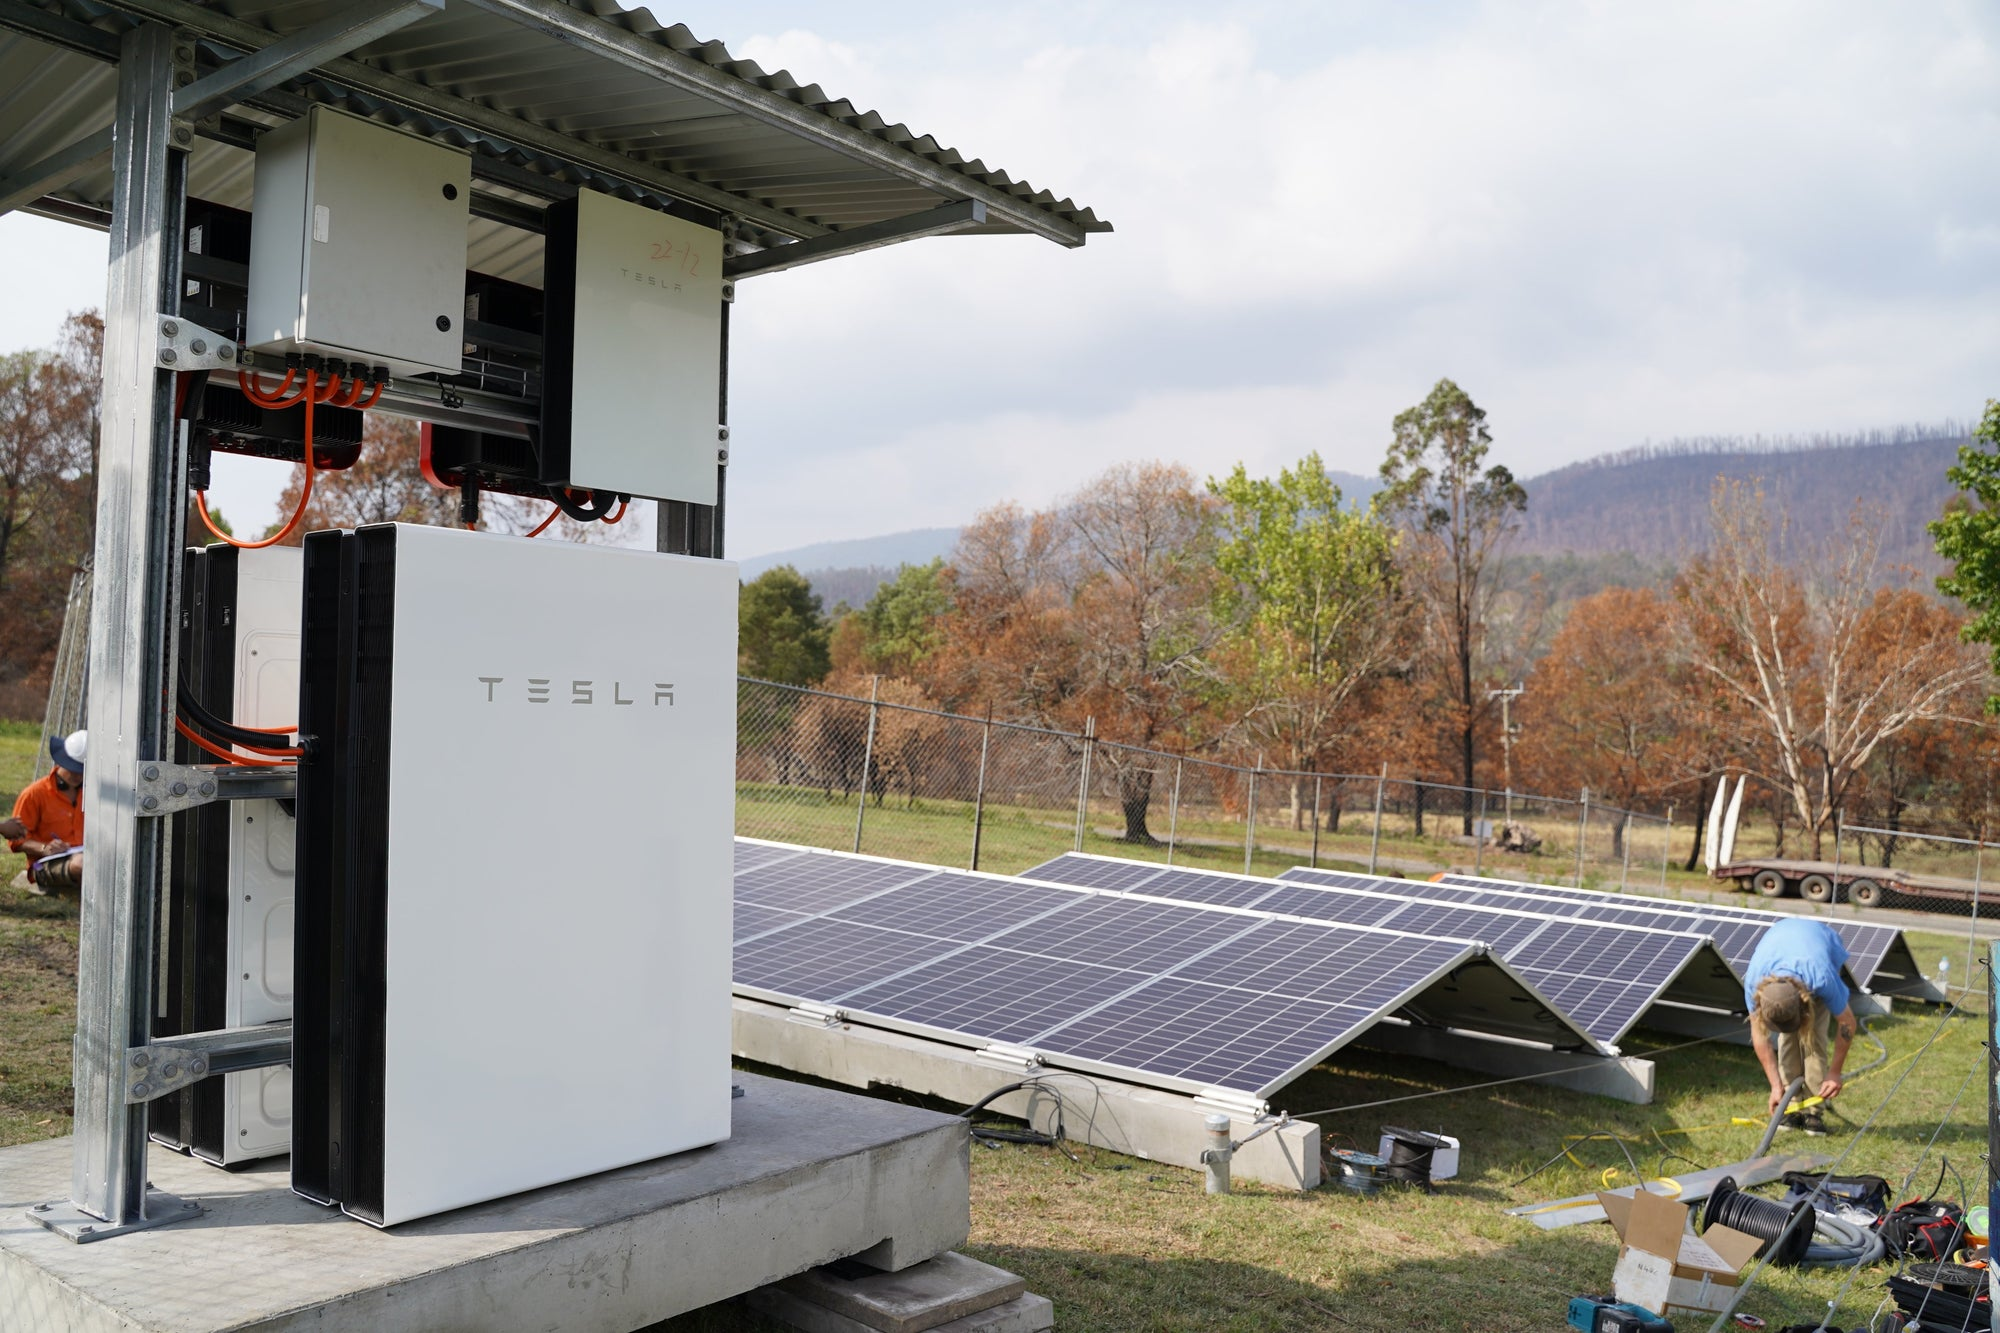 Tesla Powerwalls Being The Important Roles For Australian Natural Disaster Rebuild